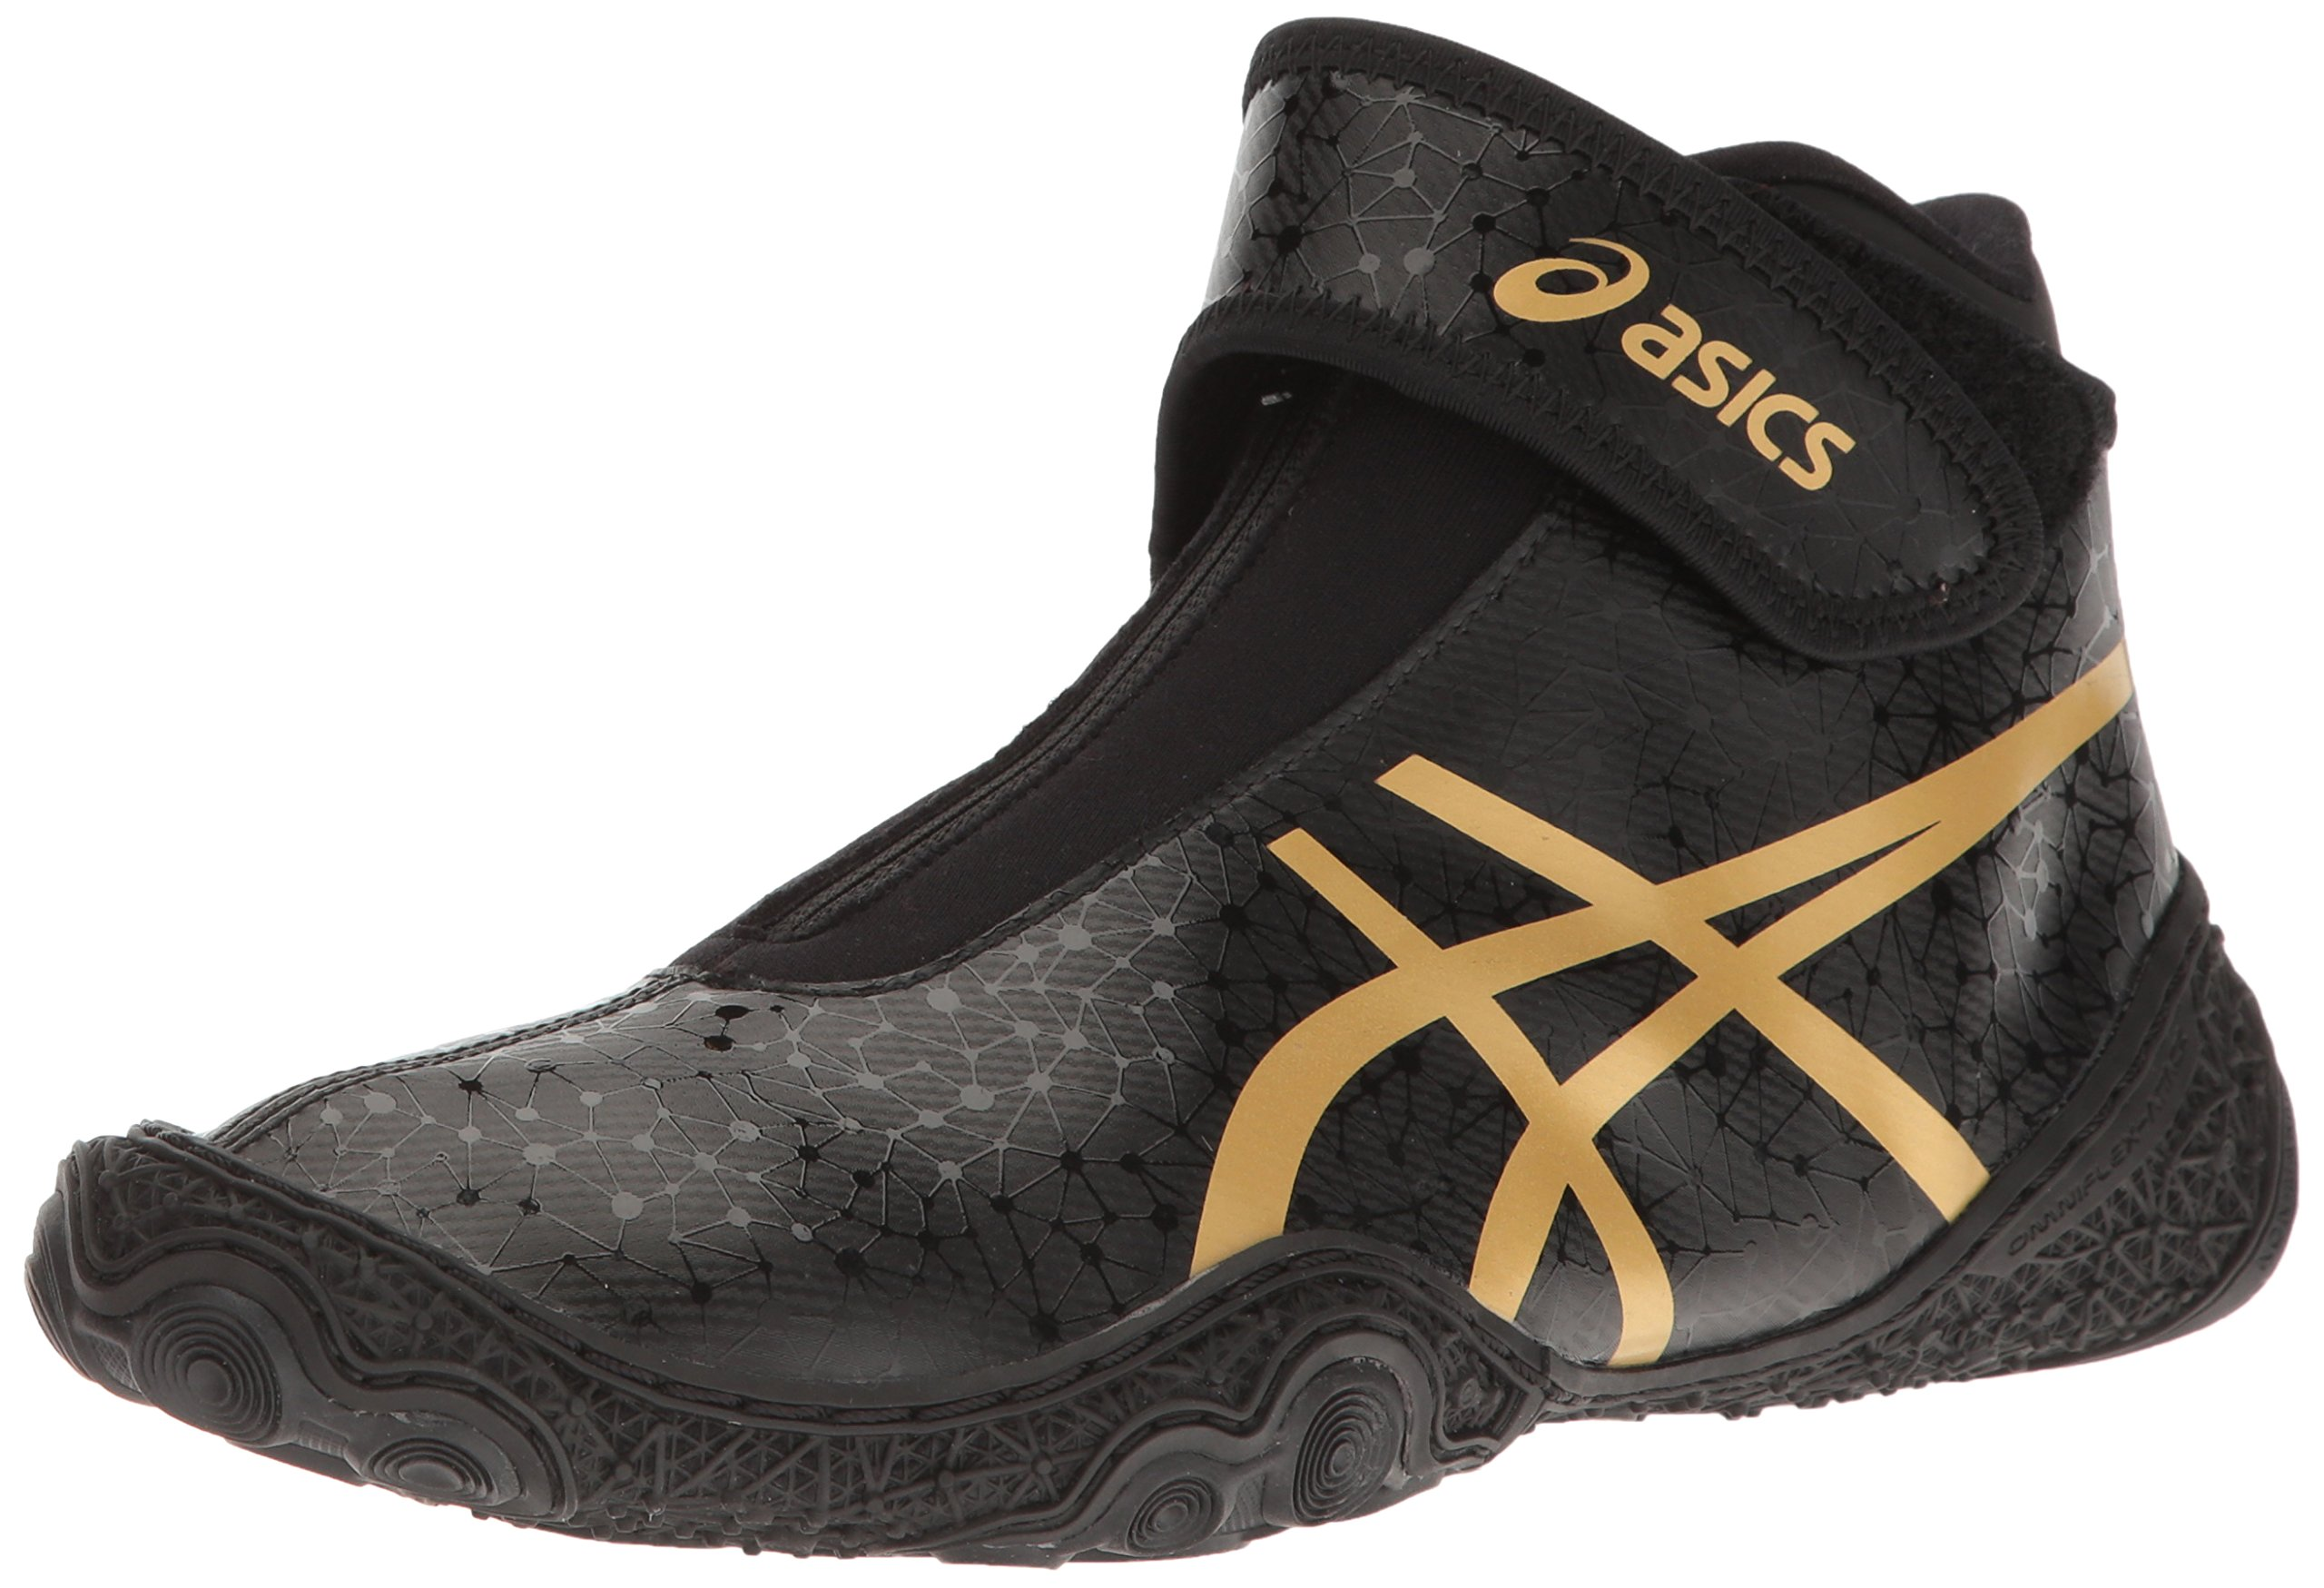 ASICS Men's Omniflex-Attack V2.0-M Wrestling Shoe, Black/Rich Gold, 14 M US by ASICS